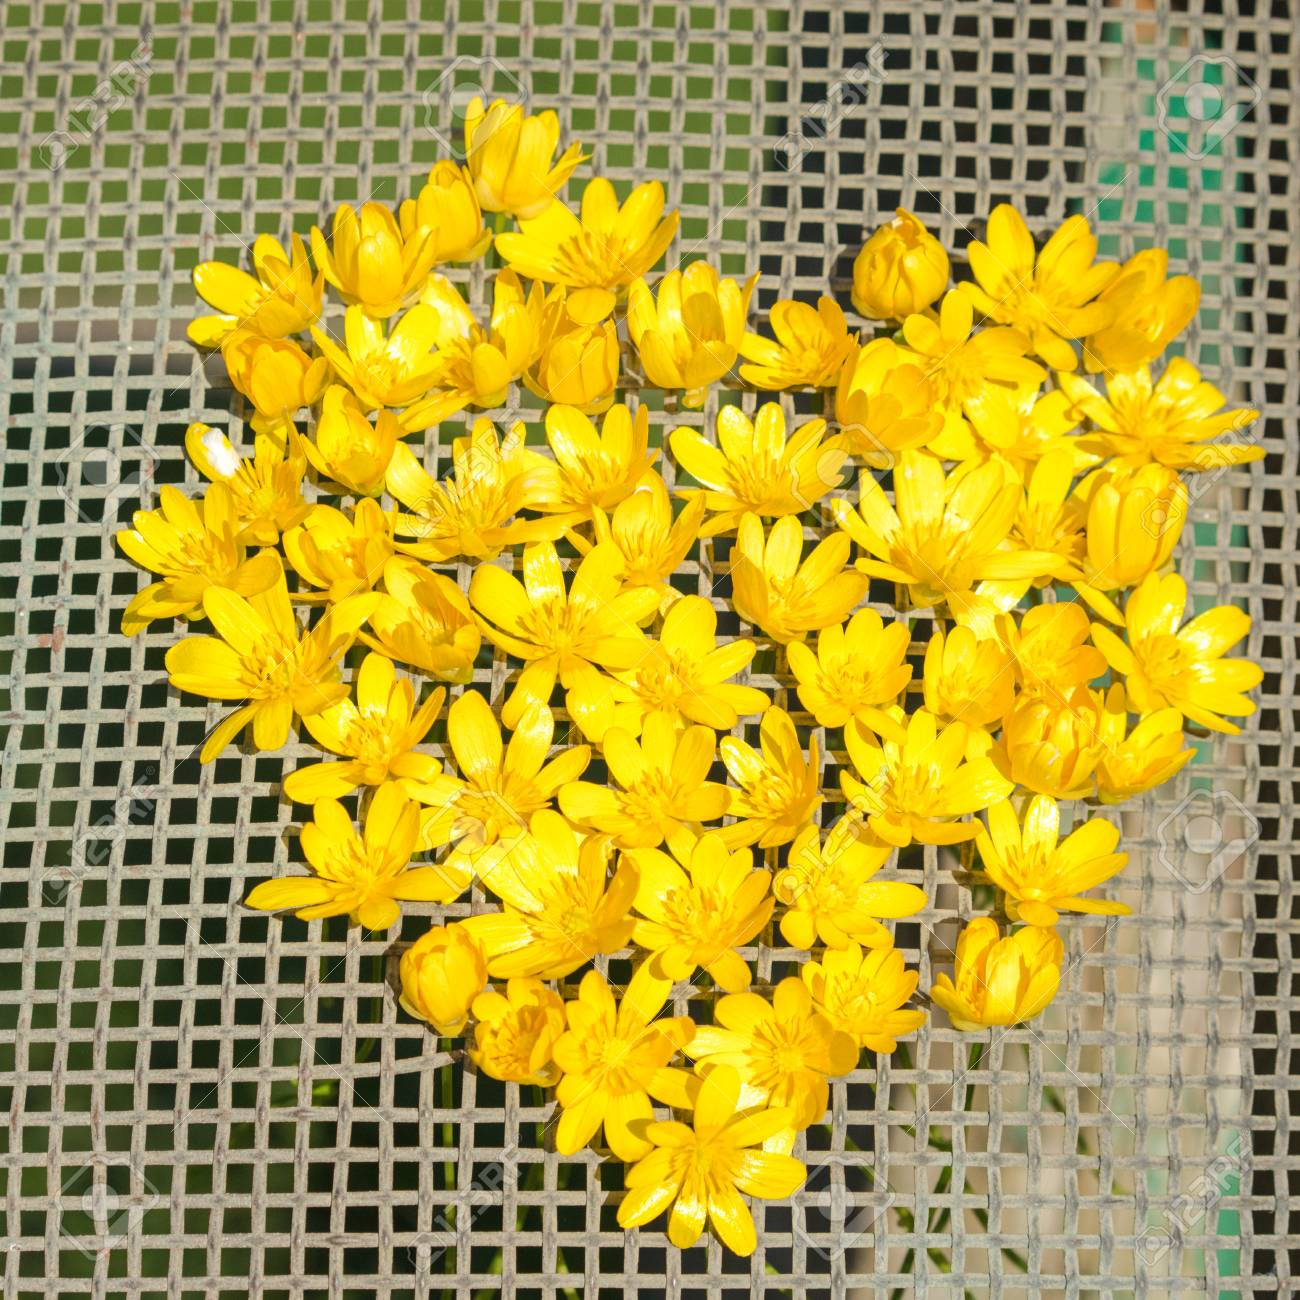 Shape Of Heart From Yellow Anemone Flowers On A Net Royalty Fria